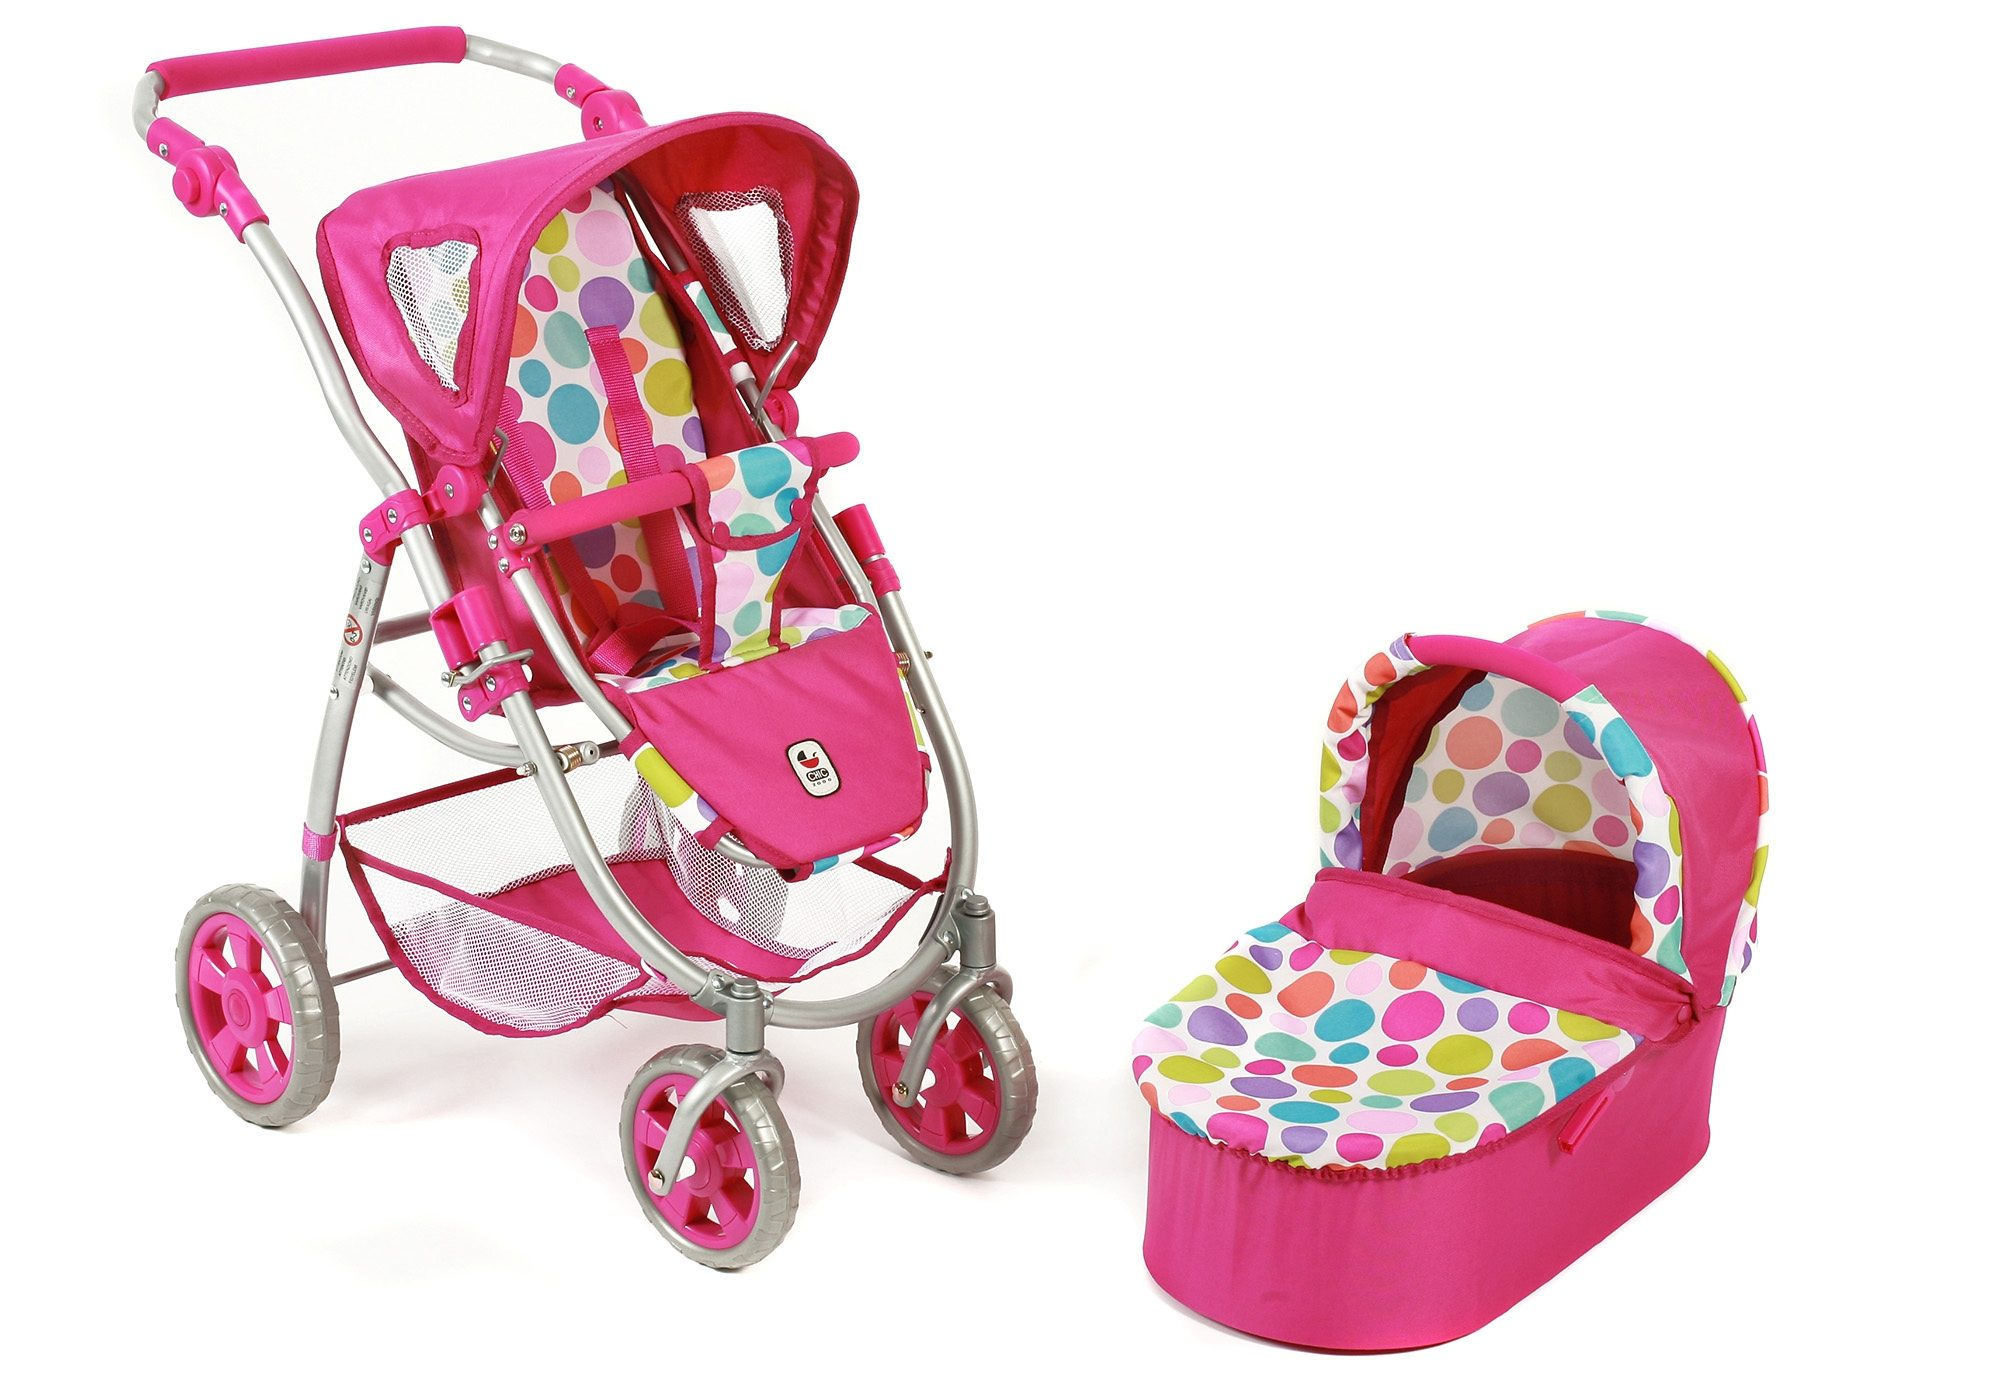 CHIC2000 2-in-1 Puppenwagen, »Emotion, Pinky Bubbles«